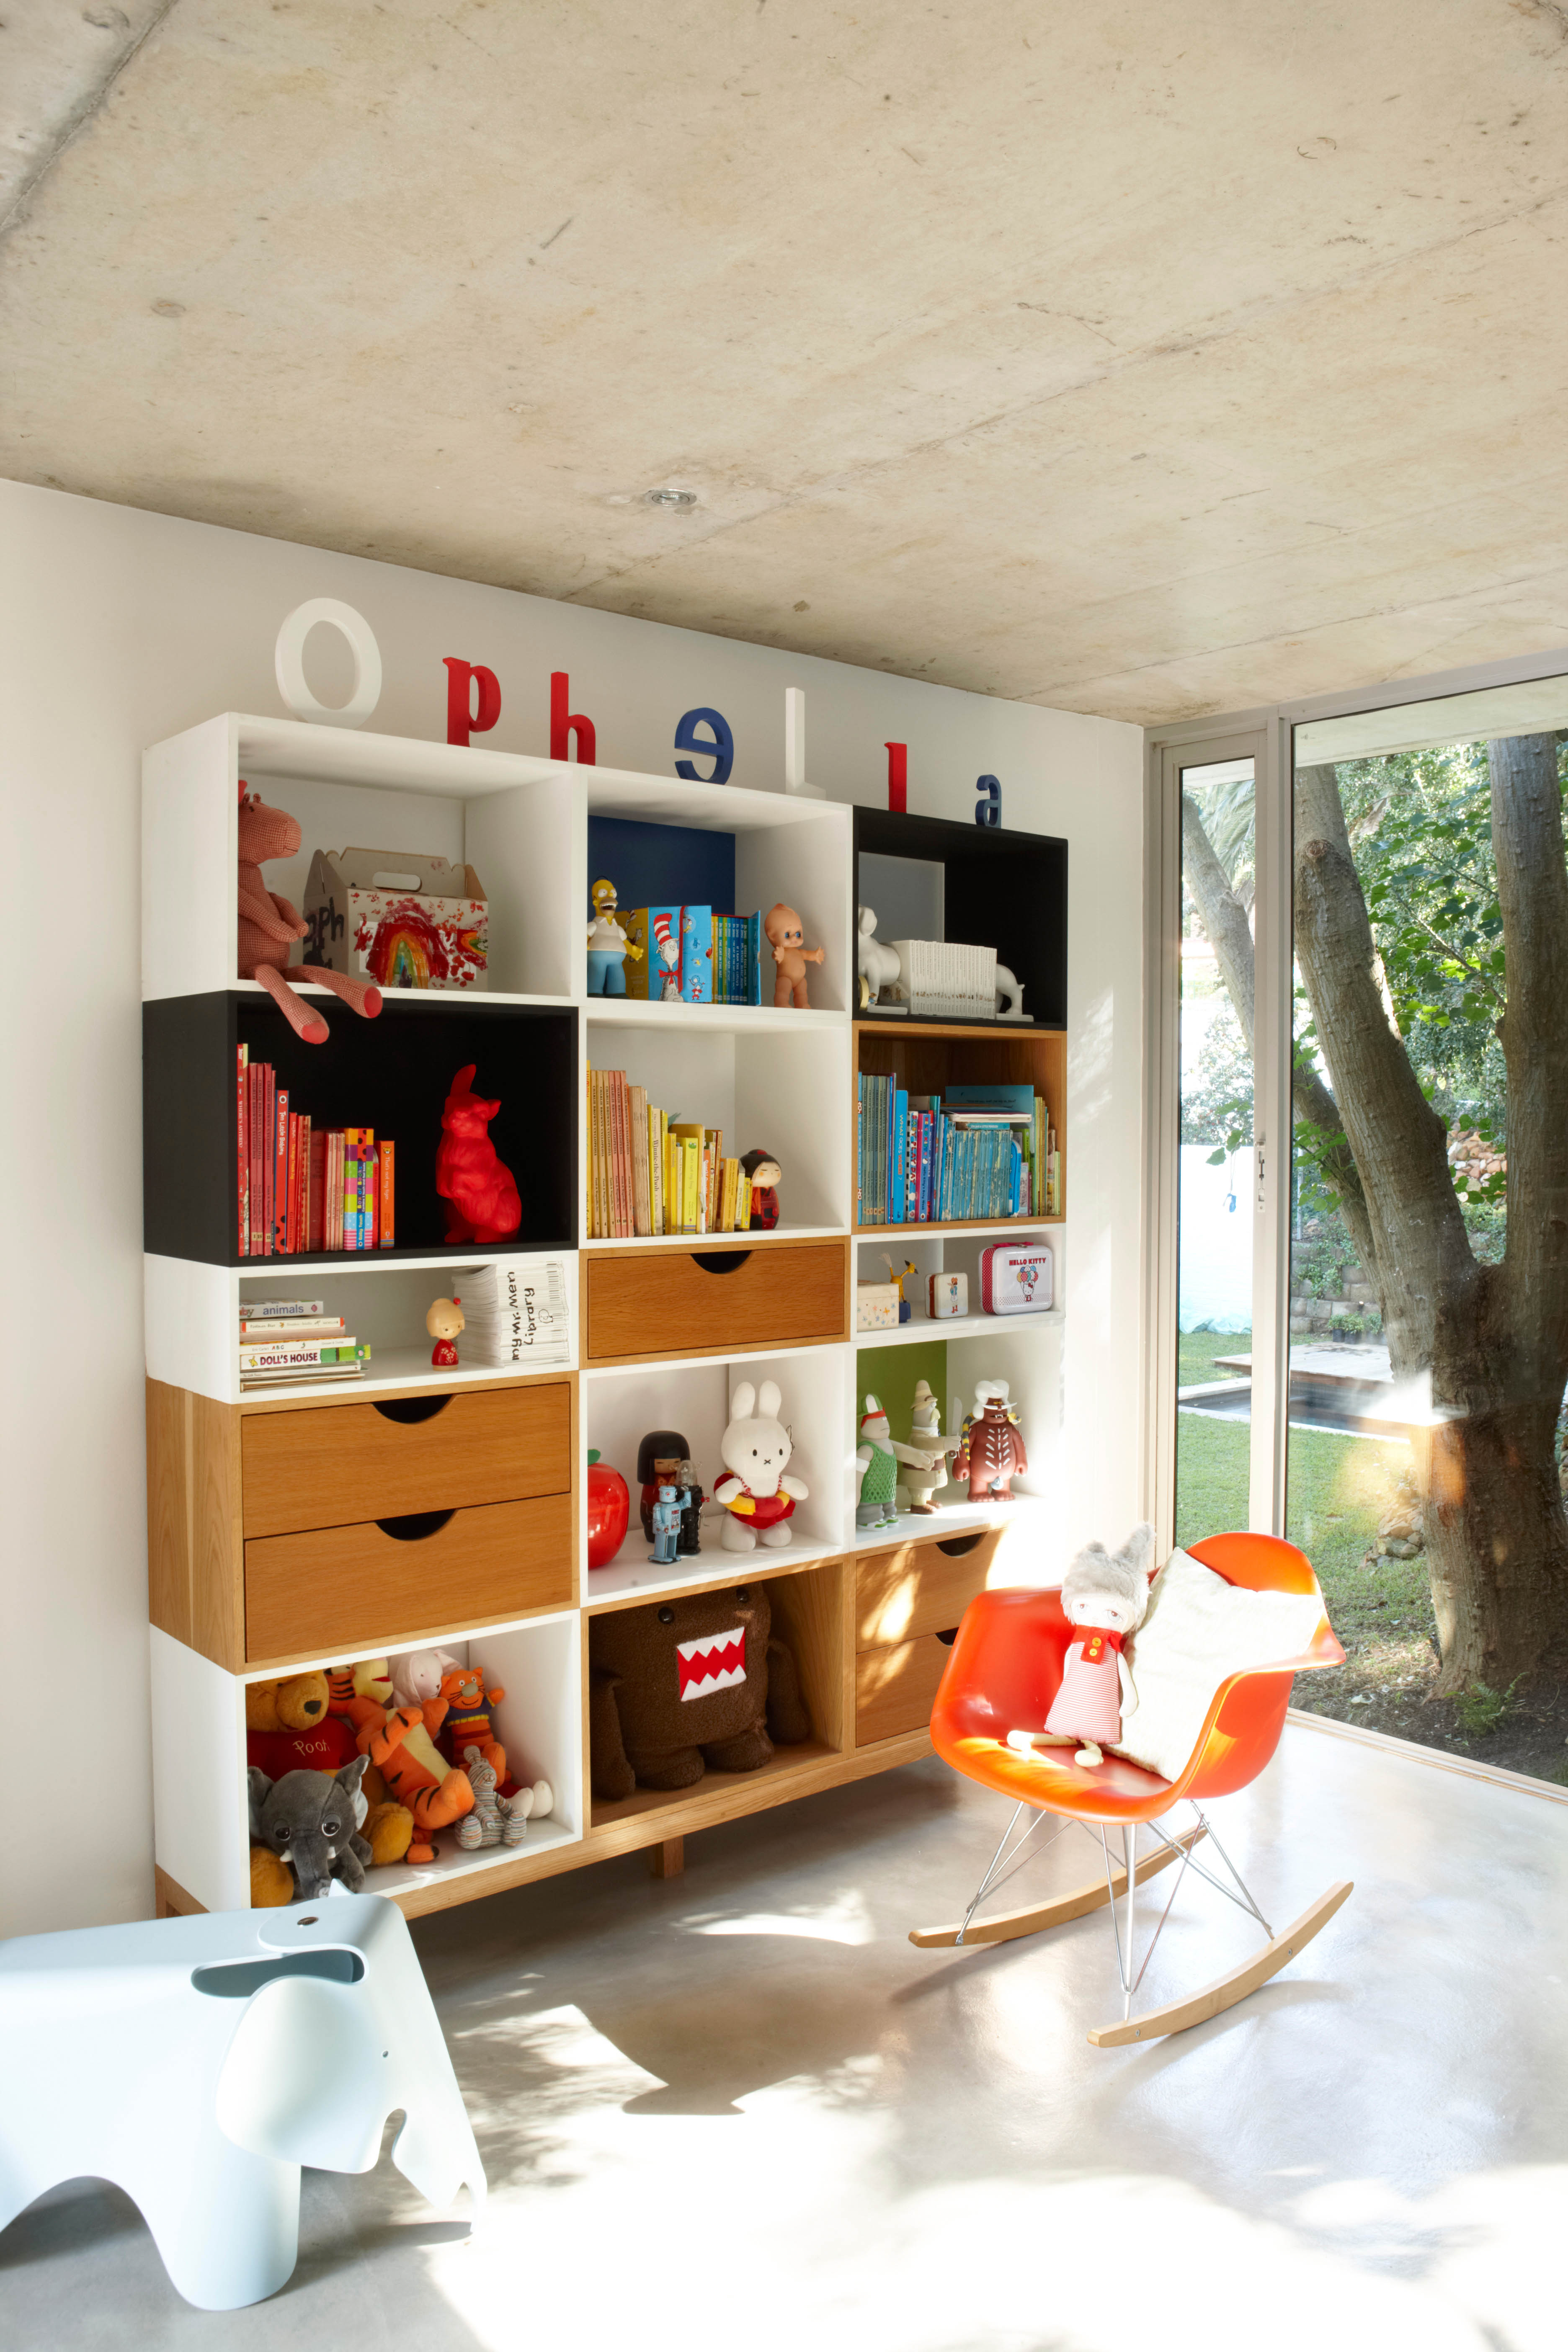 Styled Shelves with Kids Toys